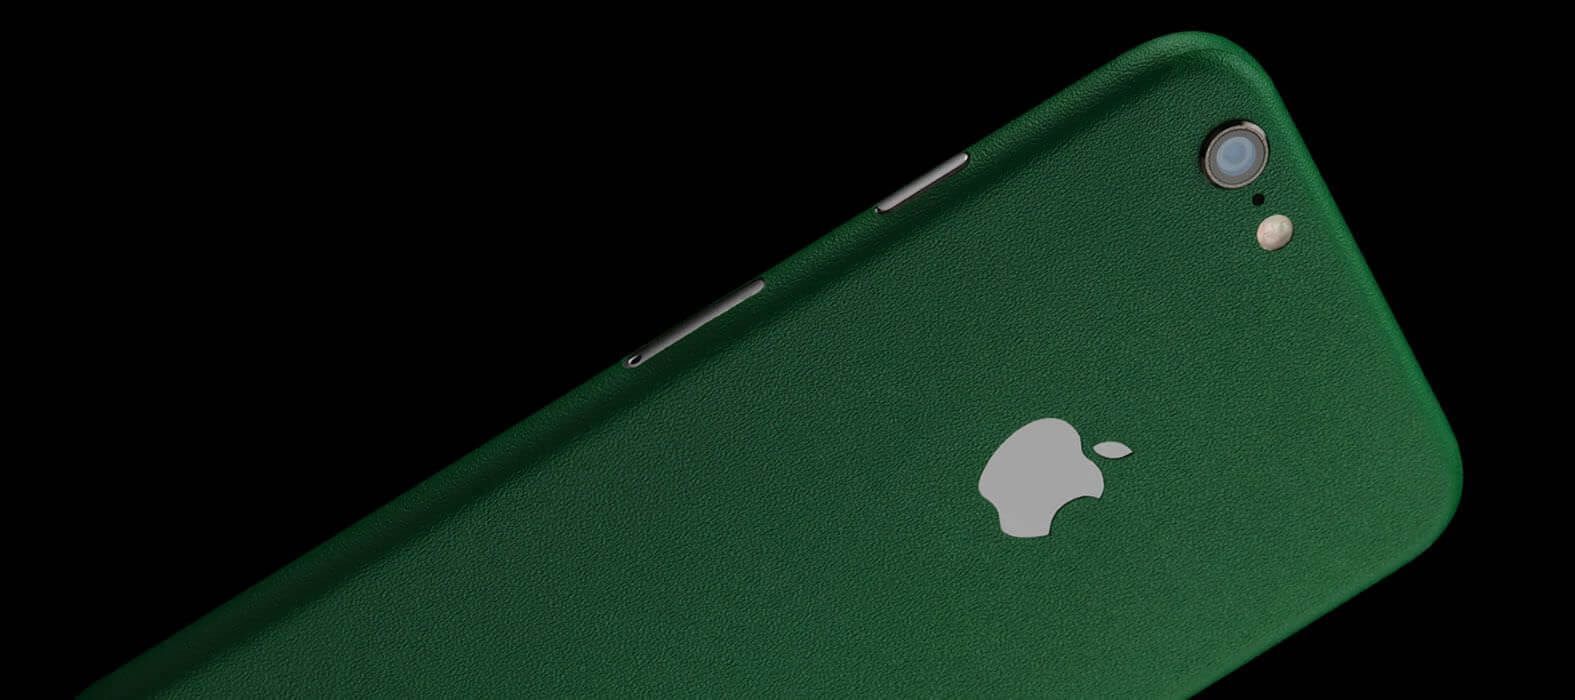 iPhone 6 Plus Skins, Wraps & decals - Sandstone Green